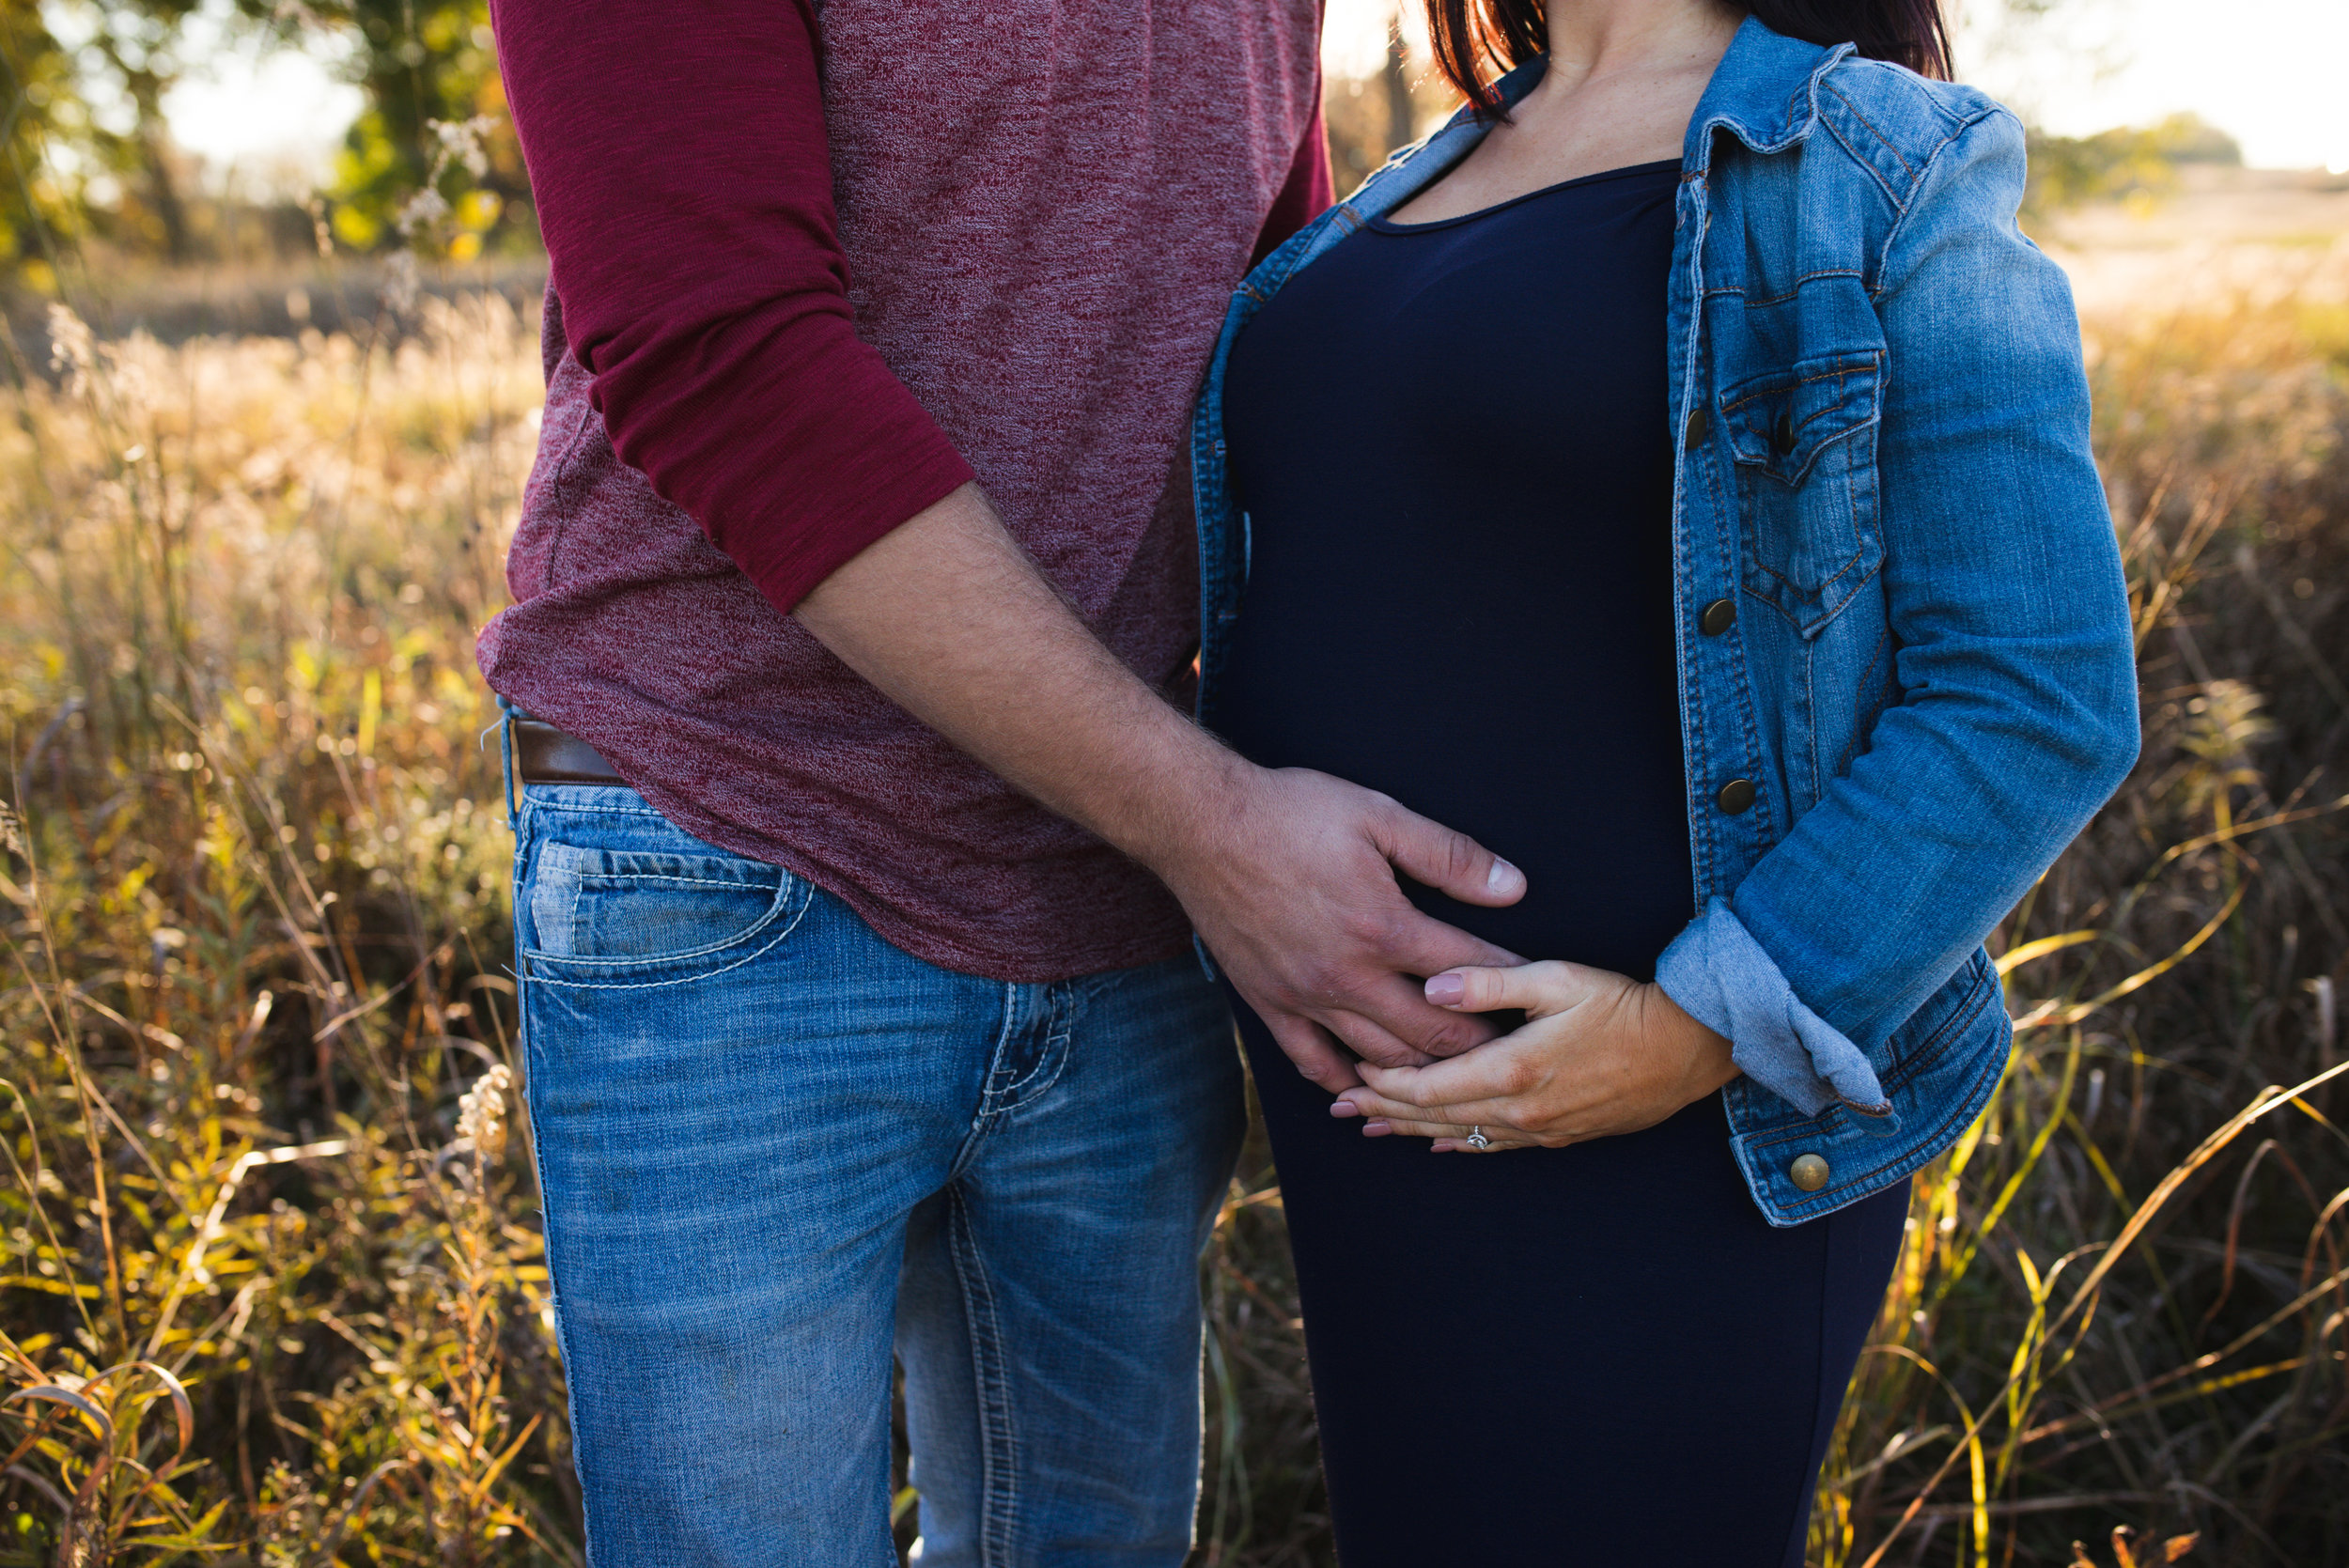 A couple who are 32 weeks pregnant standing side by side holding hands on top of pregnant belly during a maternity photo session in Iowa.